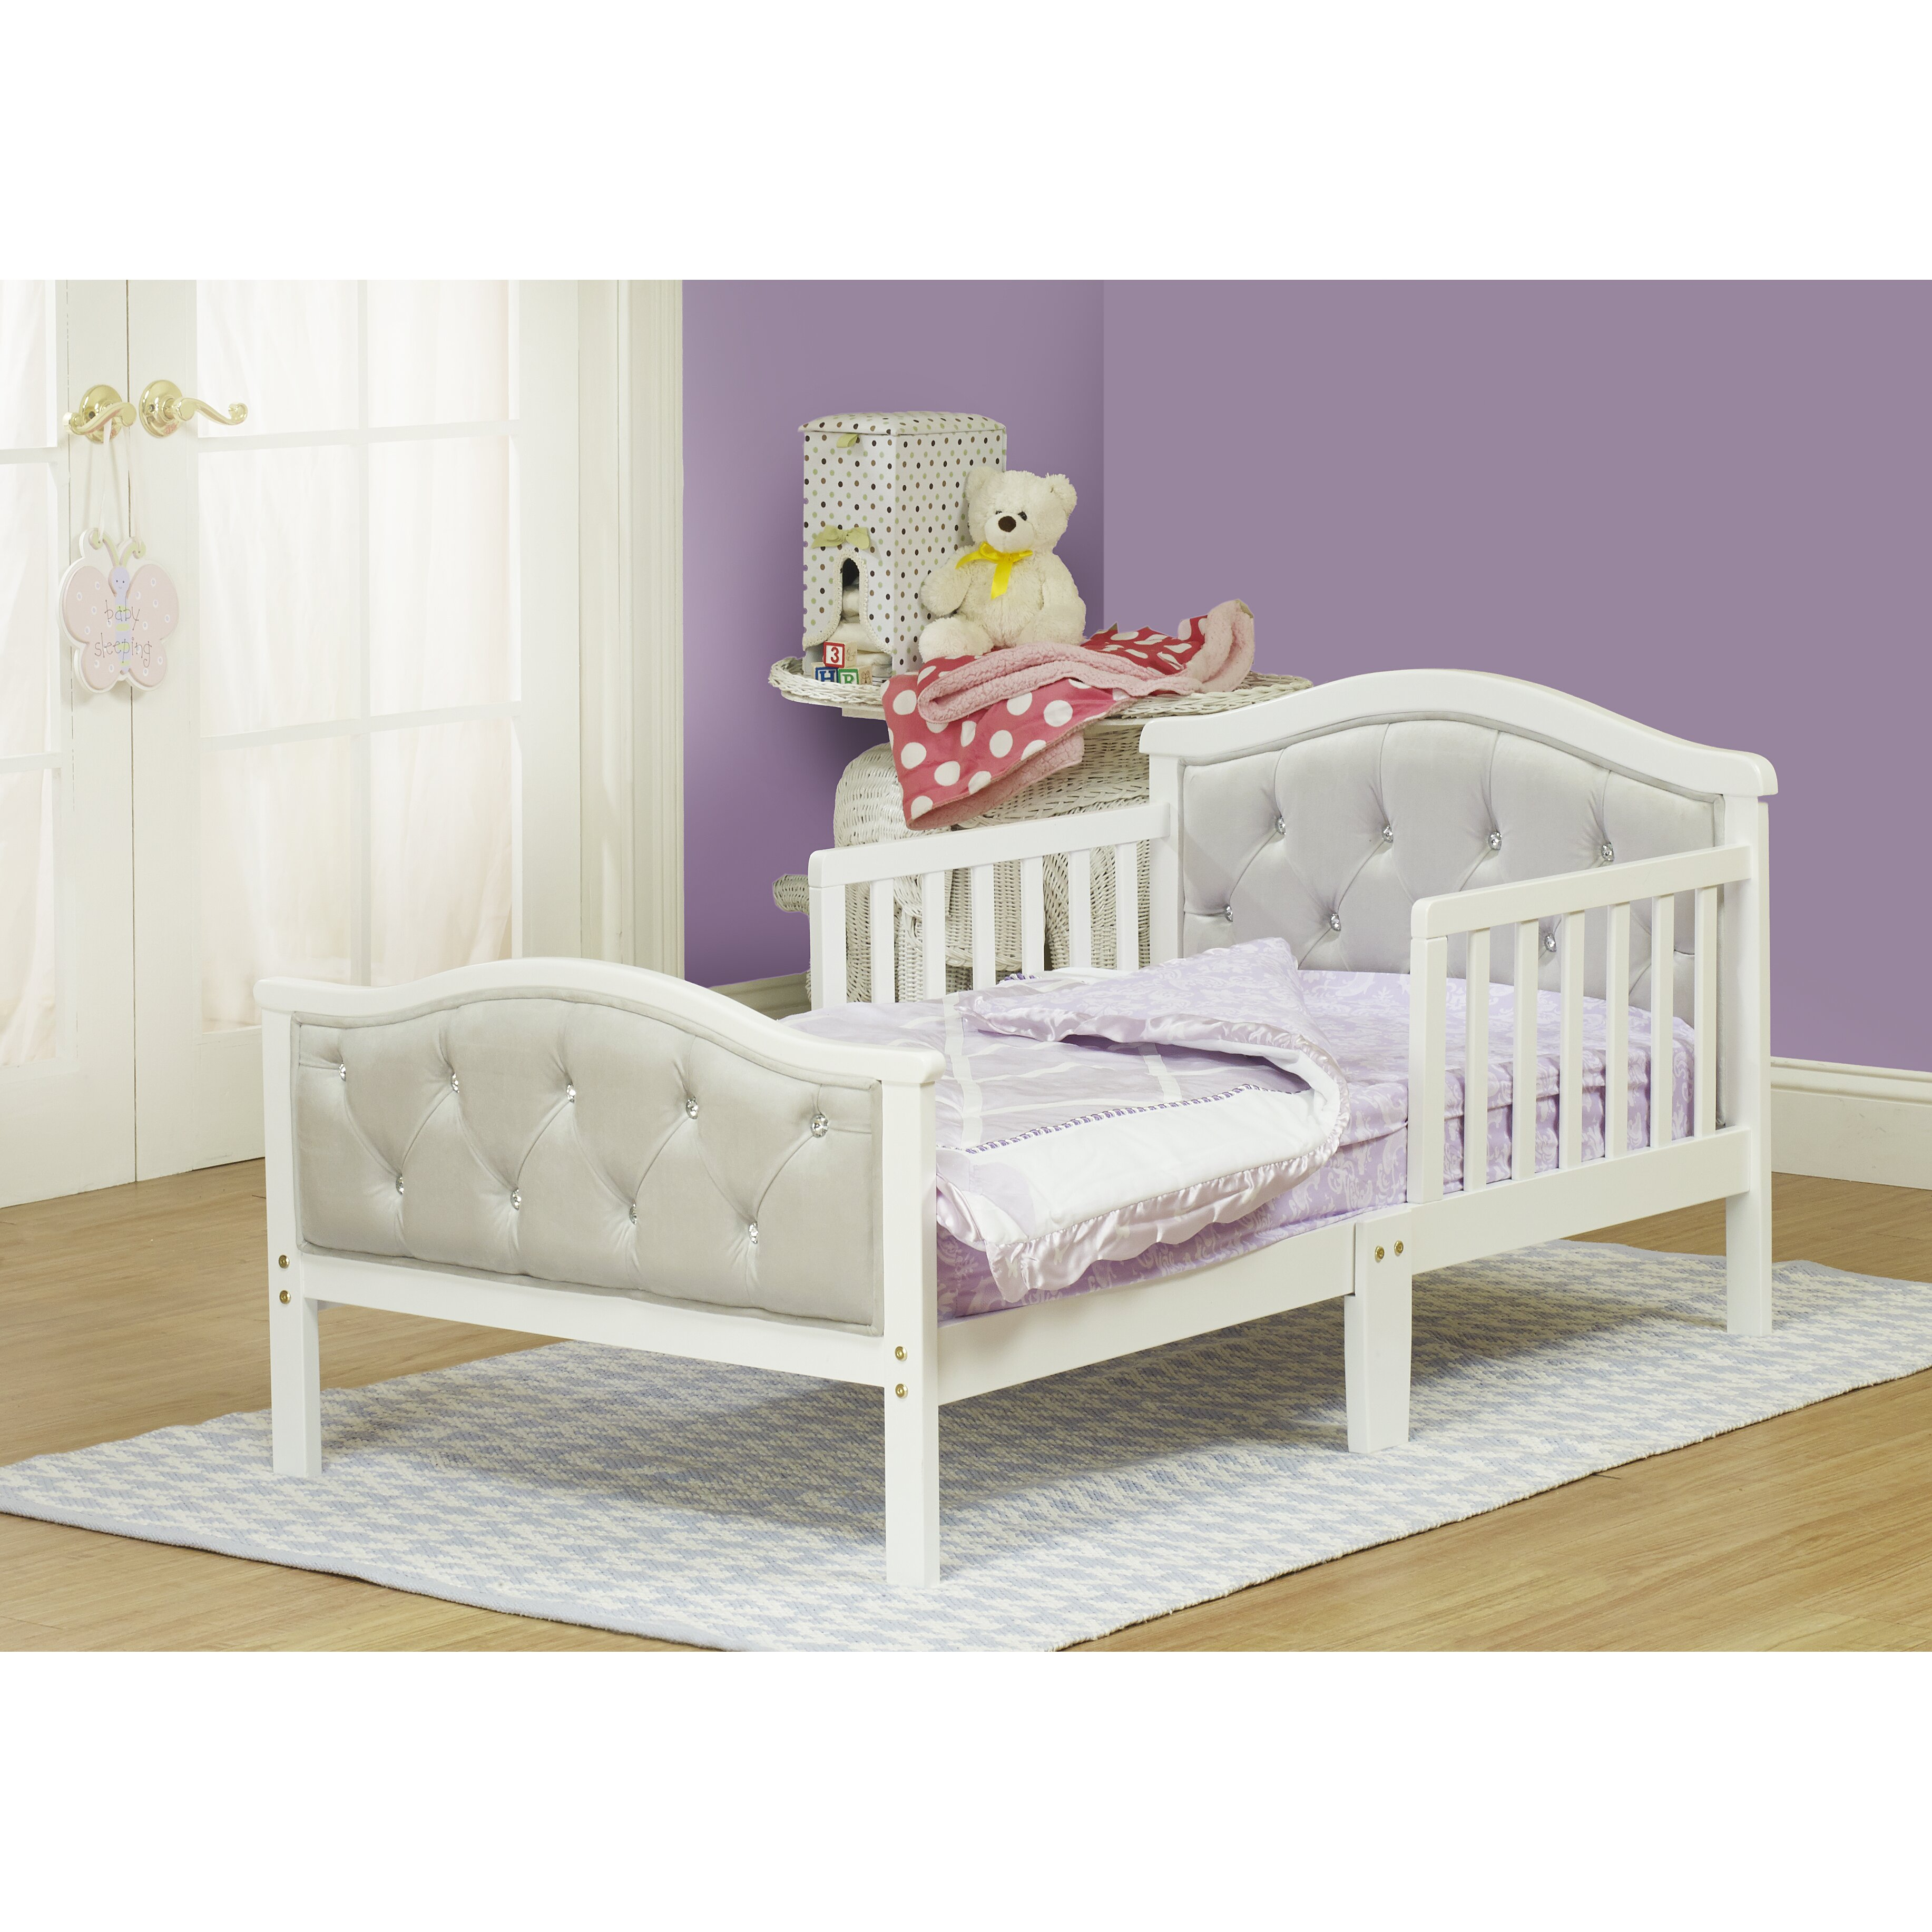 Orbelle The Orbelle Toddler Bed Amp Reviews